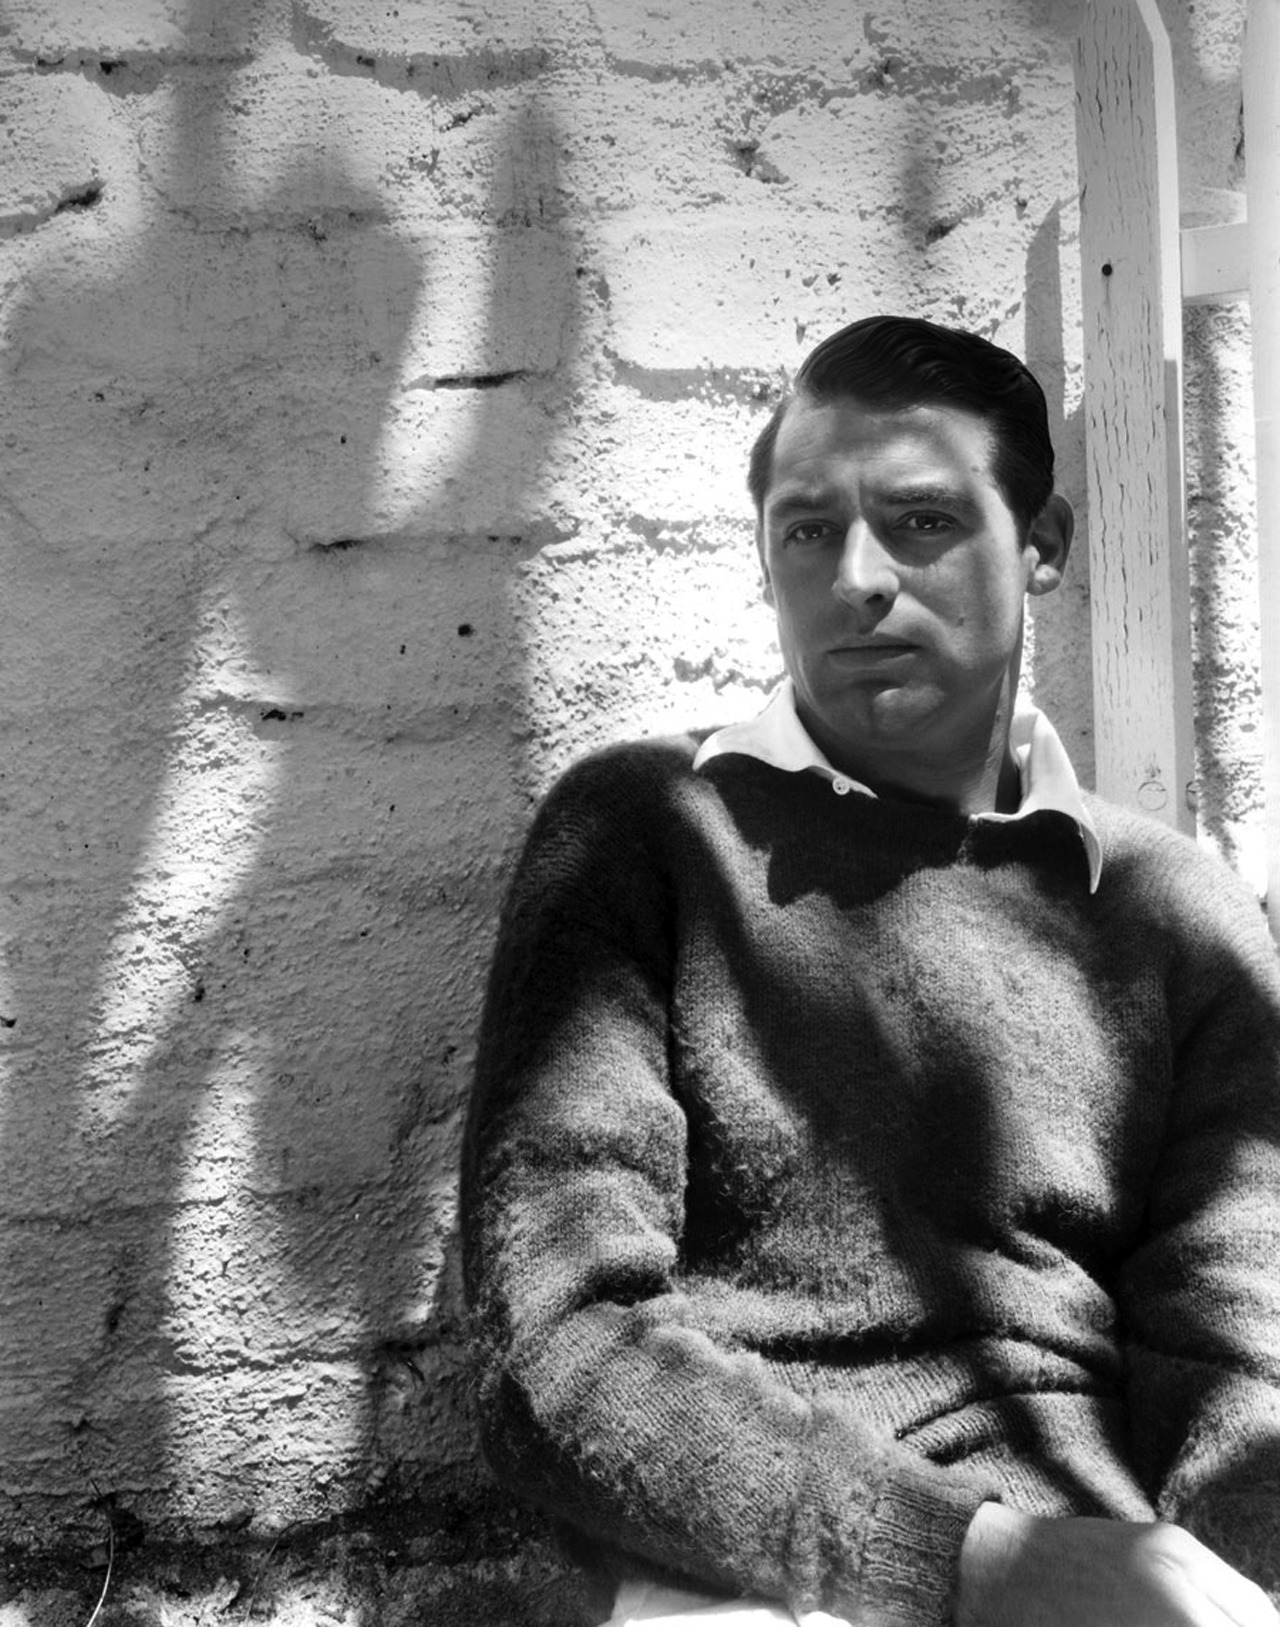 Knits For The Chill 56. Cary Grant, by Imogene Cunningham, 1932.